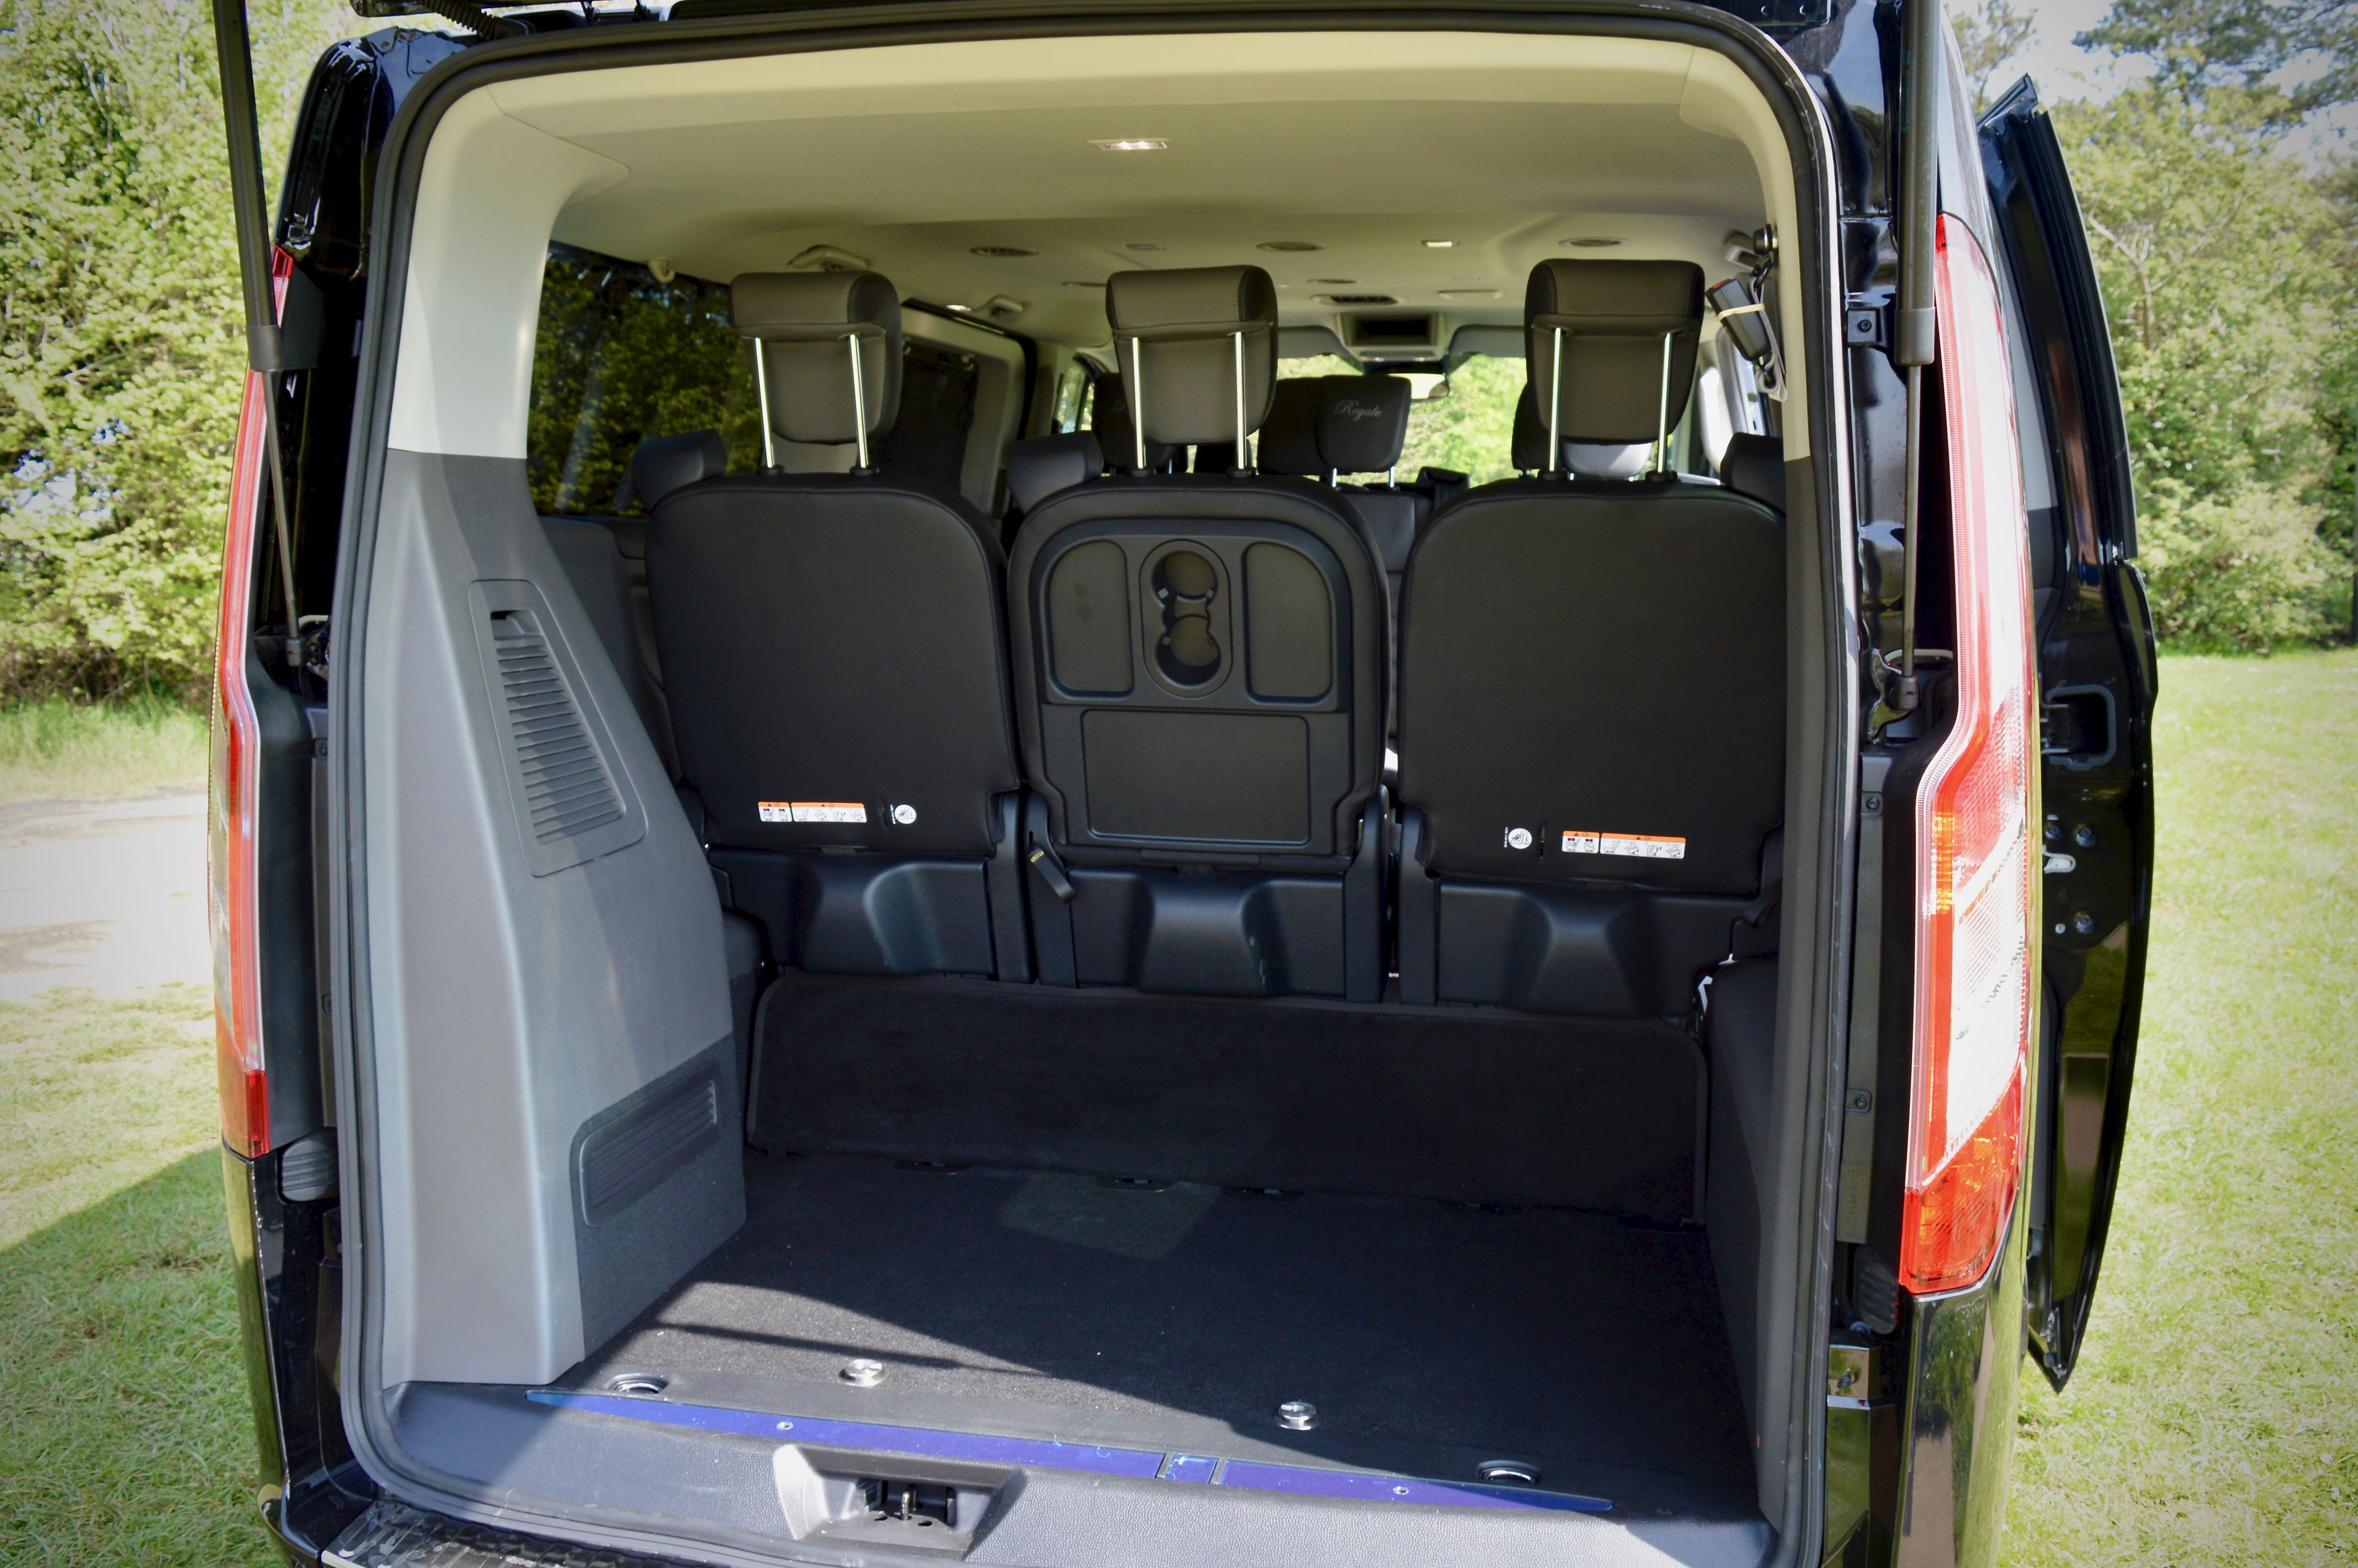 Lots of space within the boot for luggage, great for airport transfers